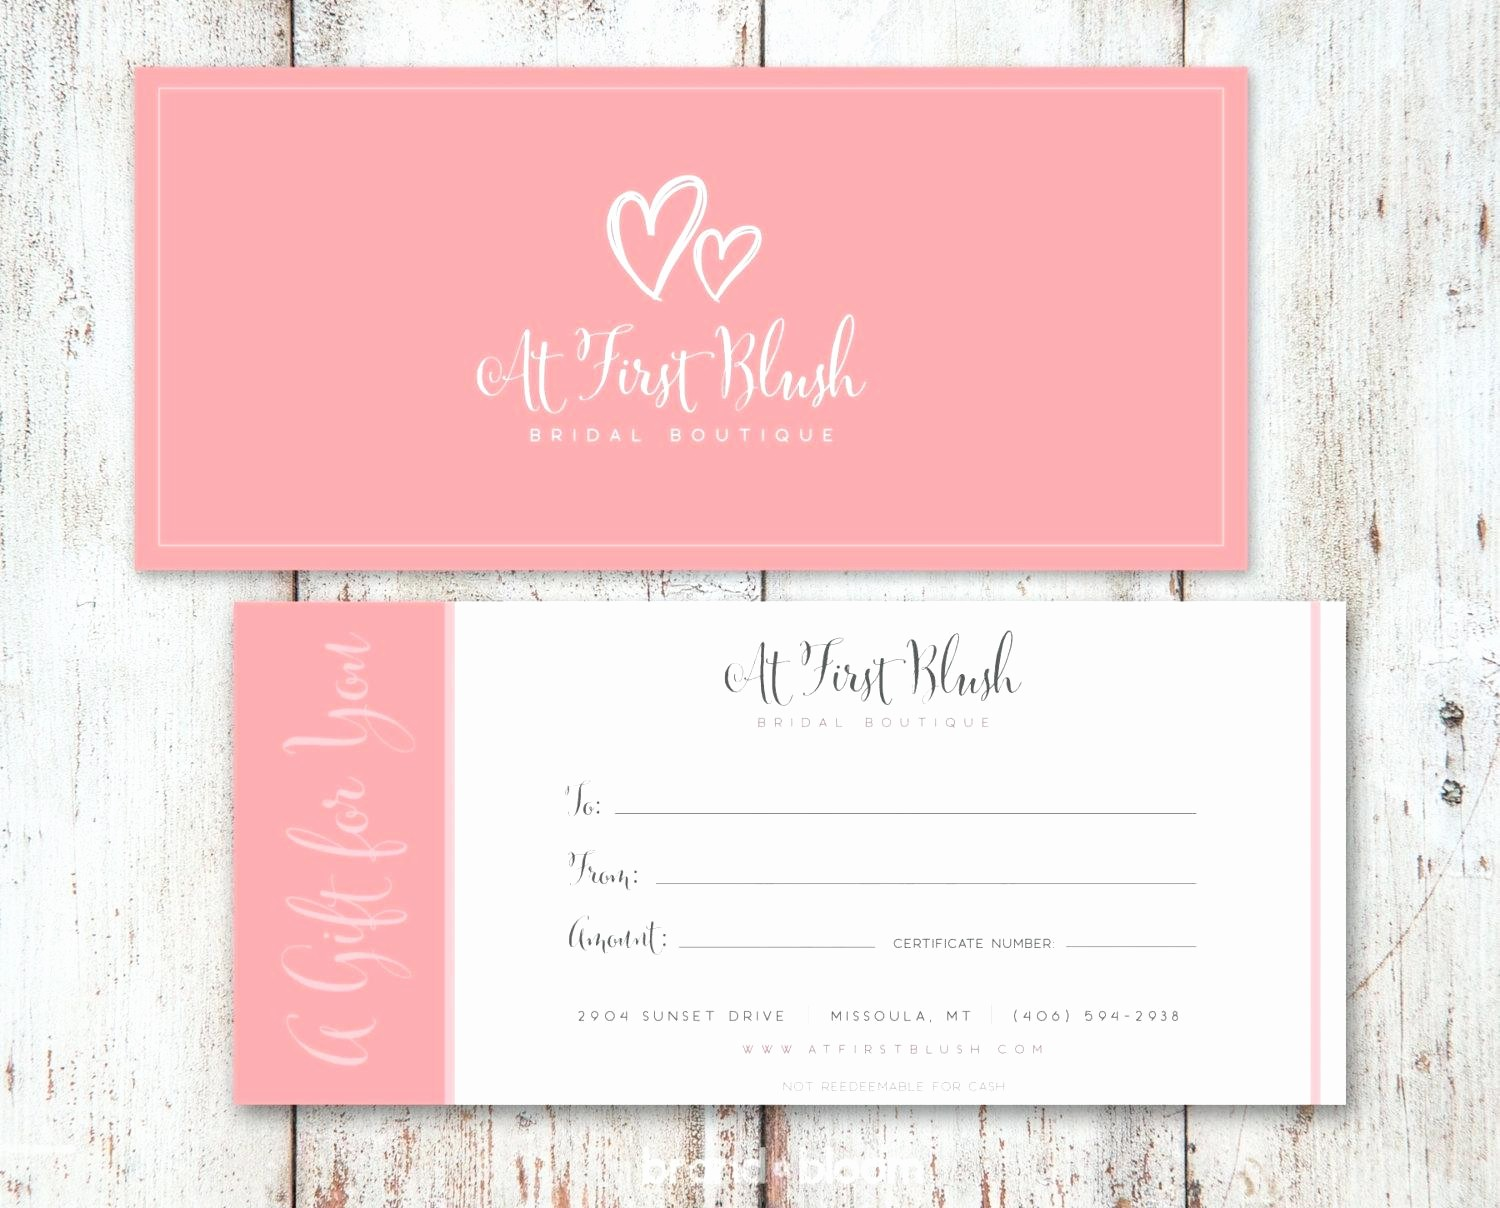 Homemade Gift Certificate Templates Free Inspirational Homemade Gift Certificate Templates Staruptalent